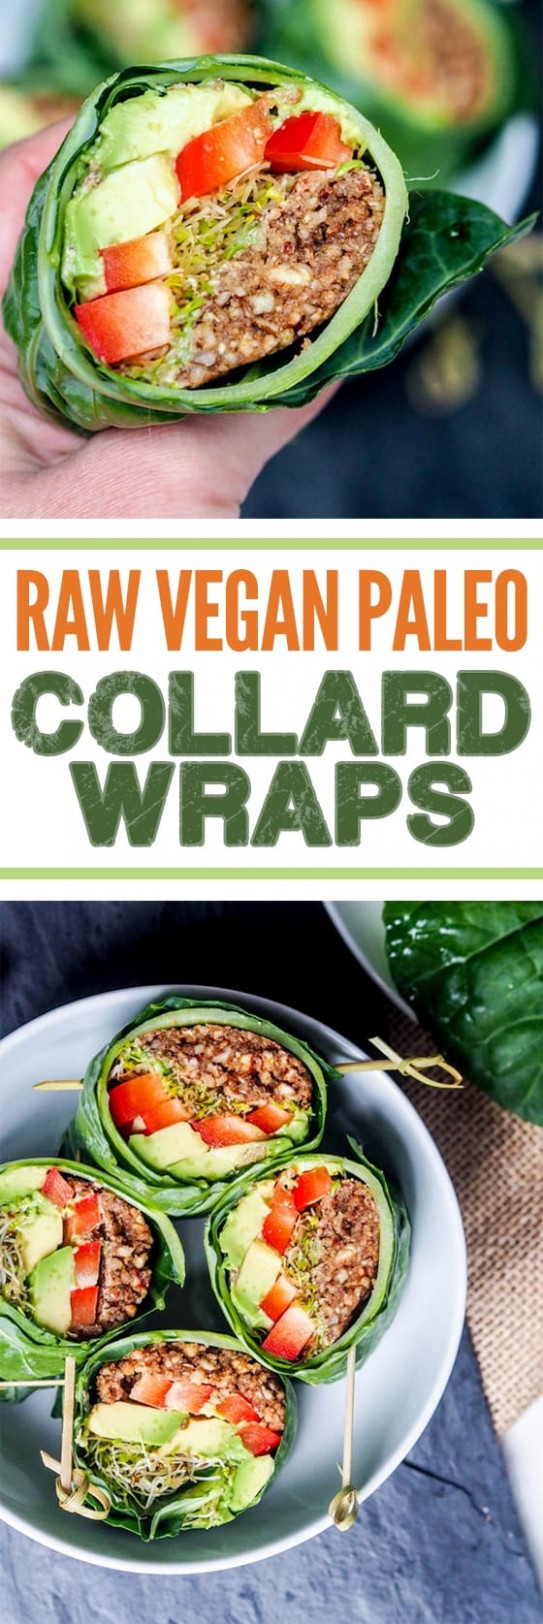 Raw Vegan Recipes - Collard Wraps Gluten Free, Paleo - Recipes To Eat Healthy